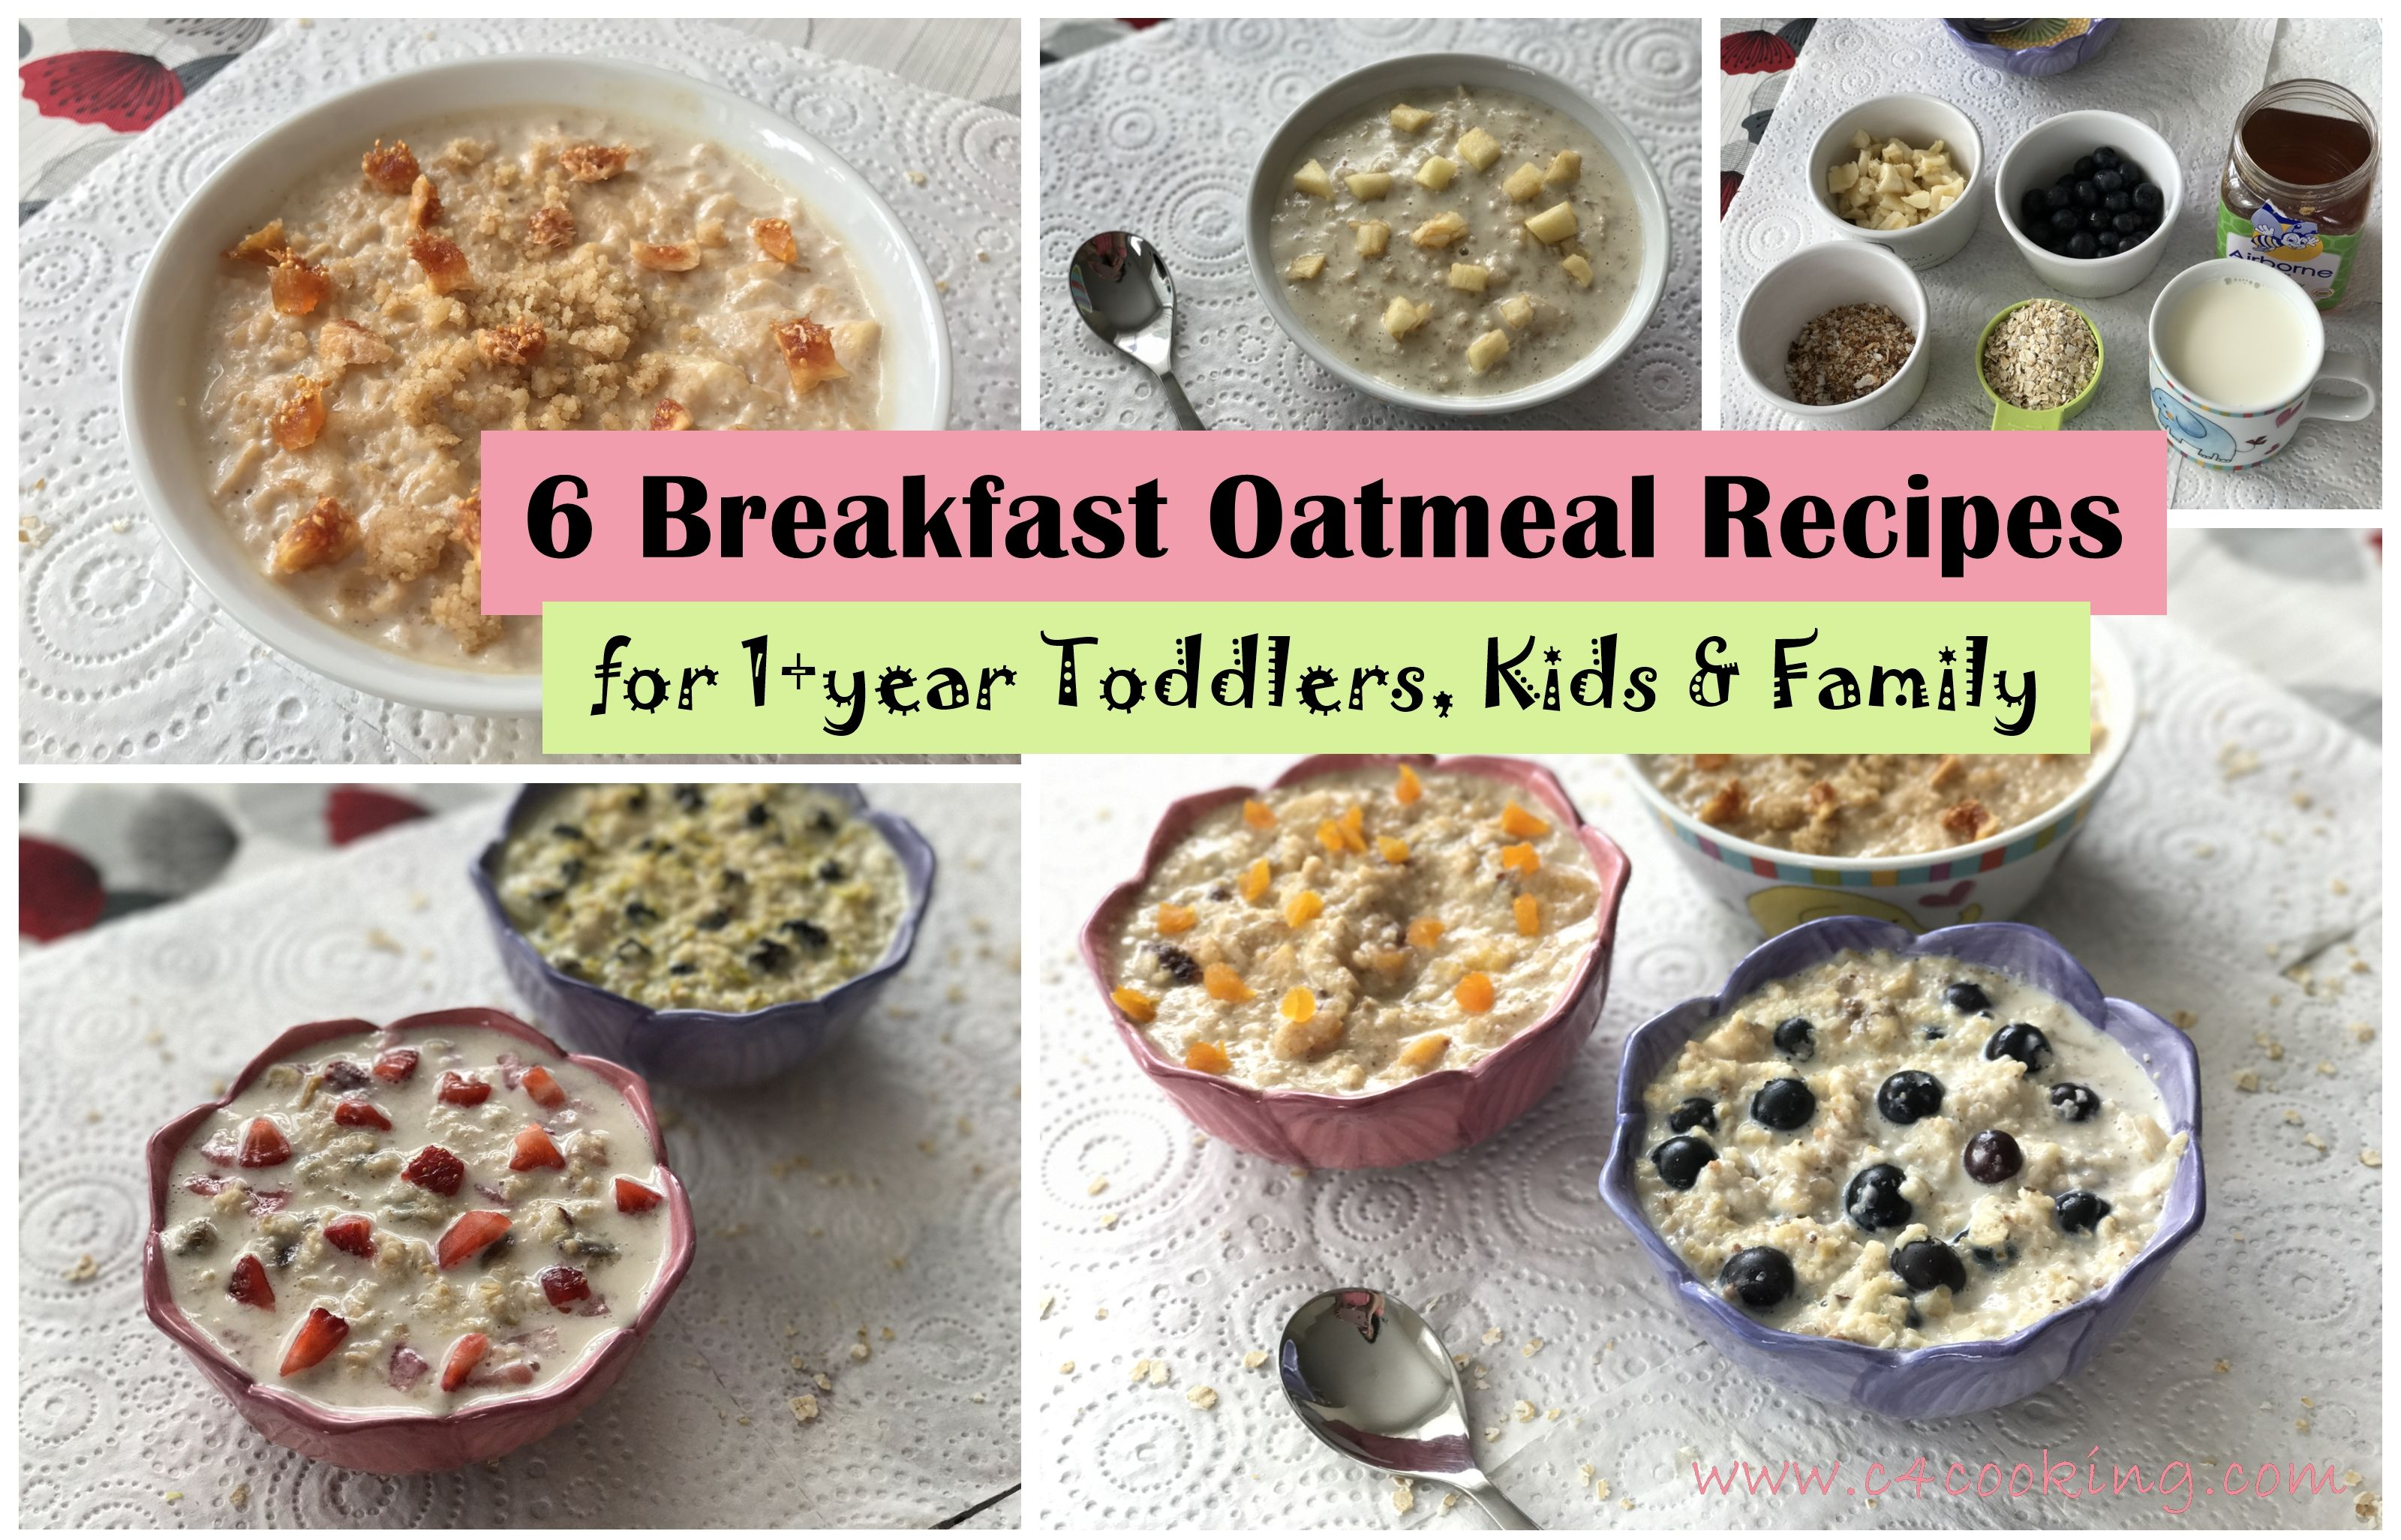 6 Breakfast Oatmeal Recipes For 1 Year Toddlers Kids